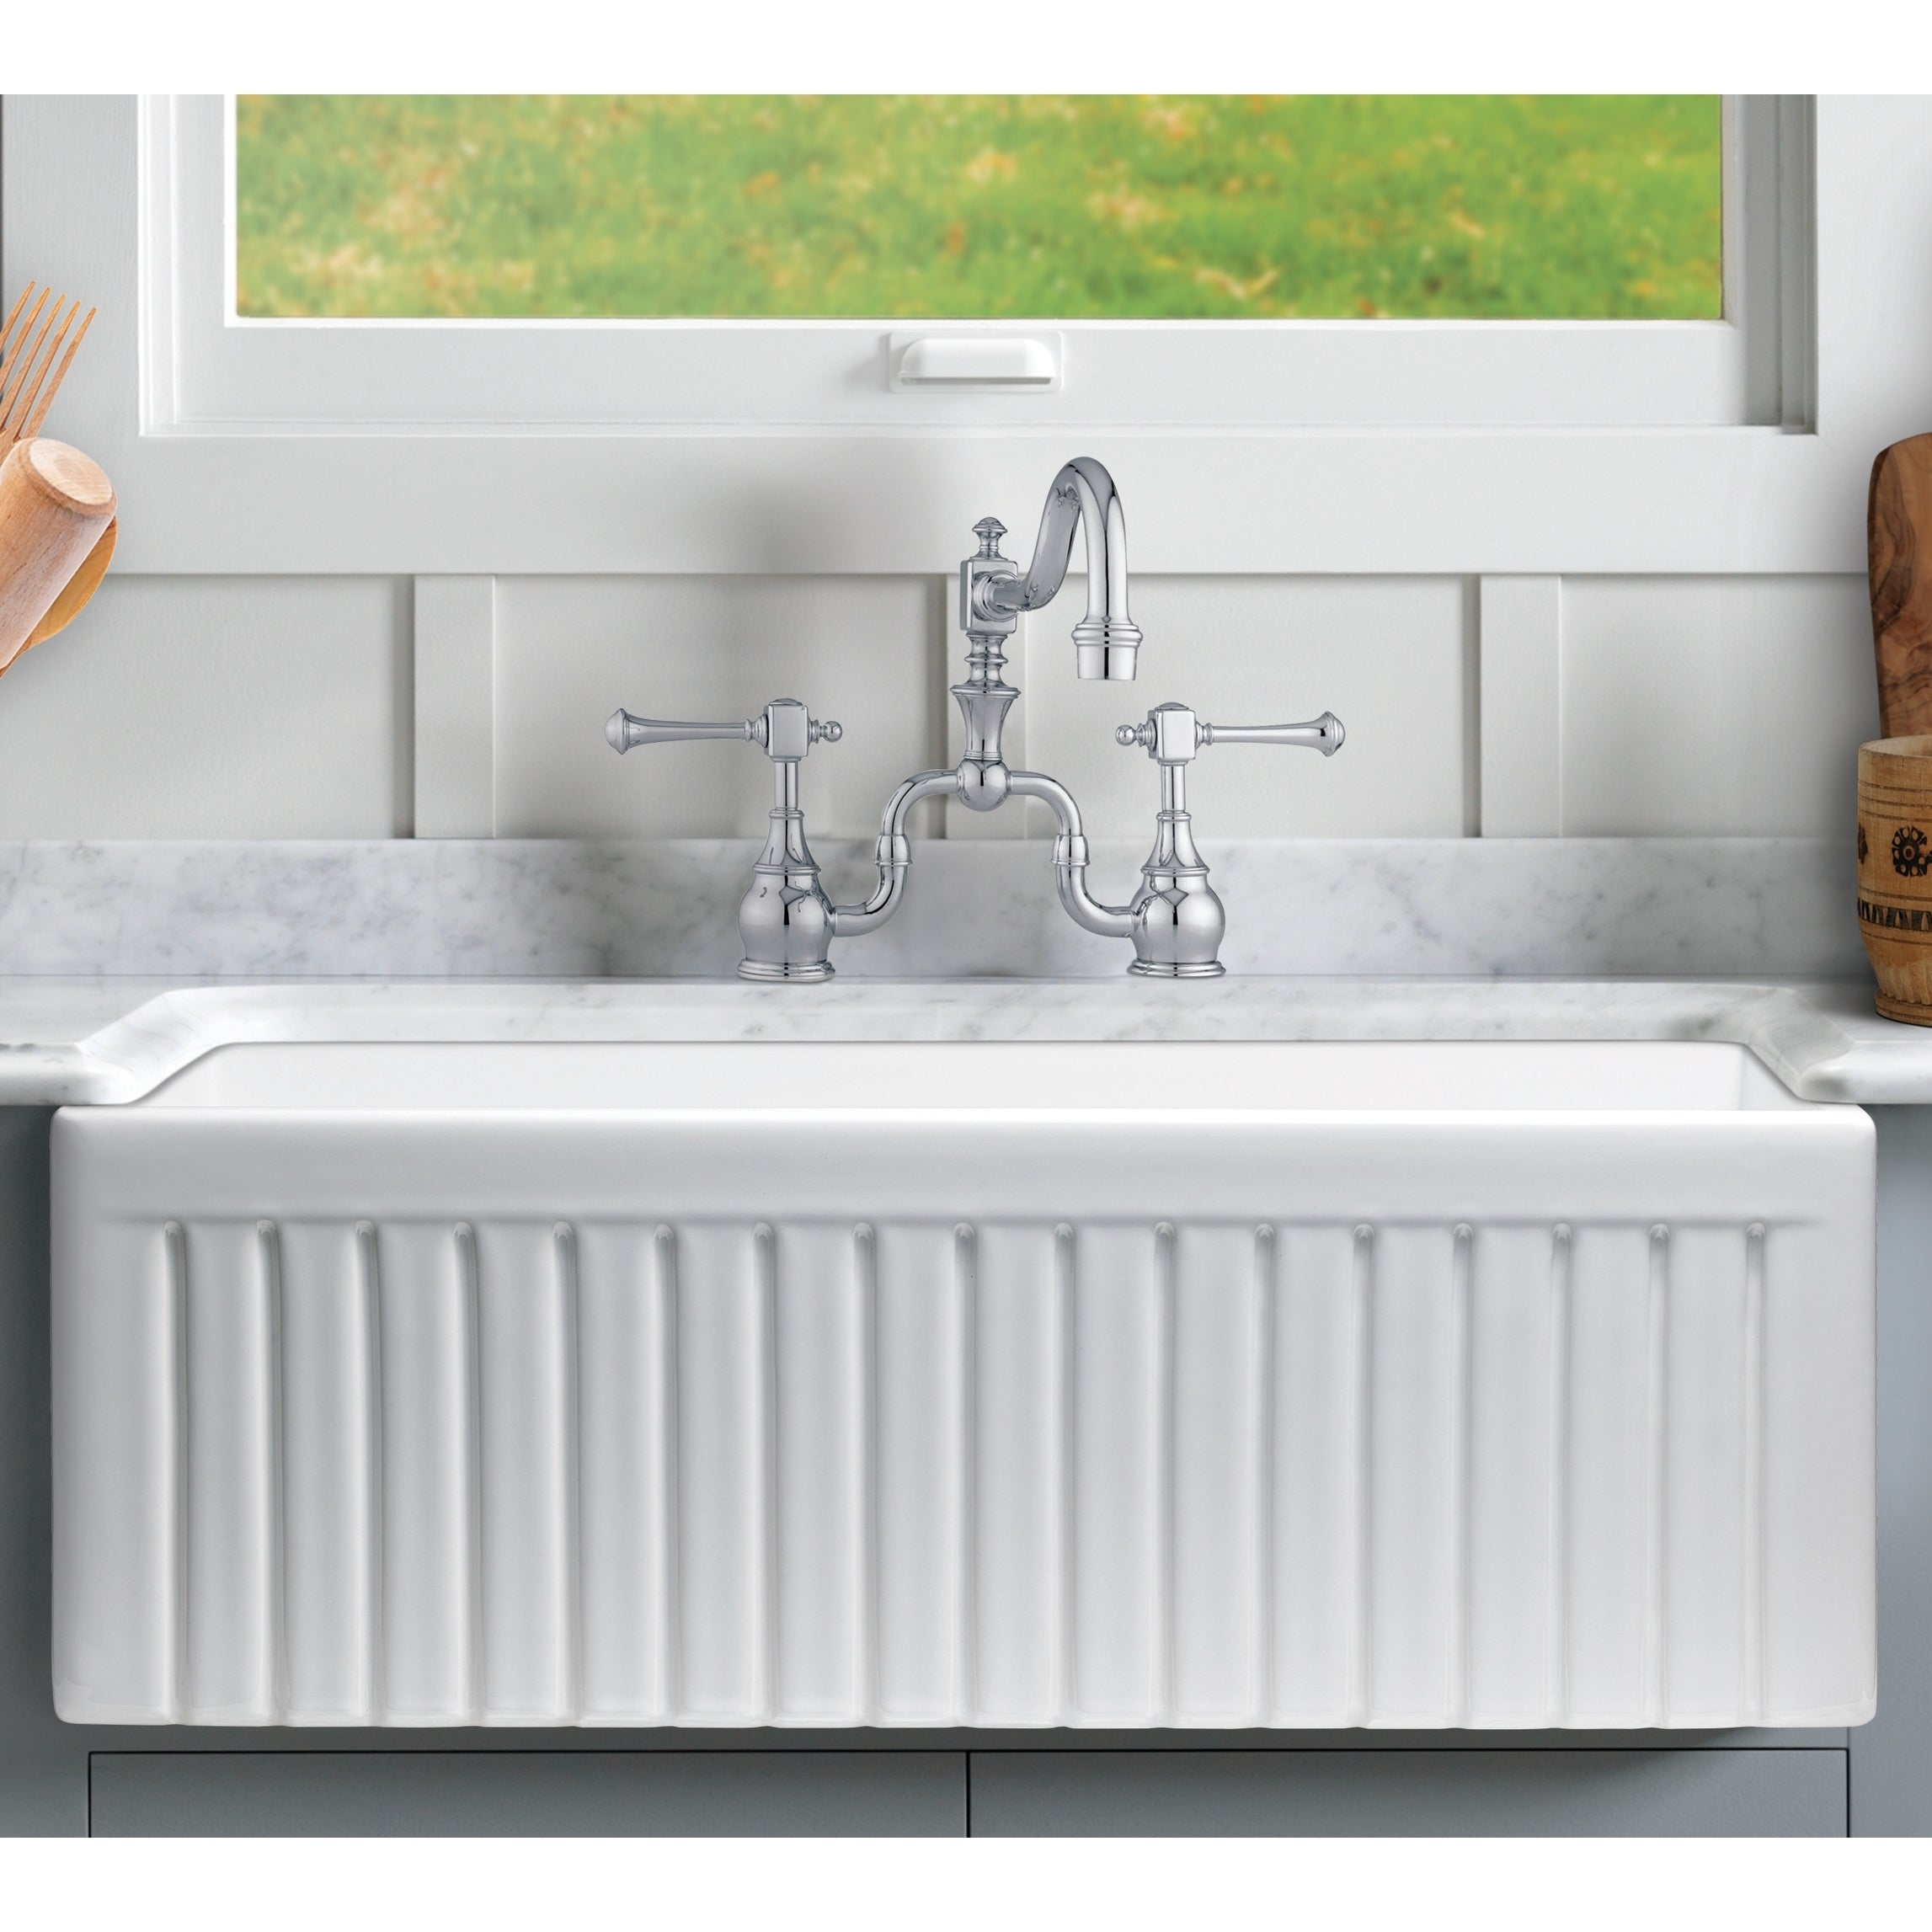 sutton place 24 in  single bowl reversible fireclay farmhouse kitchen sink with grid   free shipping today   overstock com   24140827 sutton place 24 in  single bowl reversible fireclay farmhouse      rh   overstock com